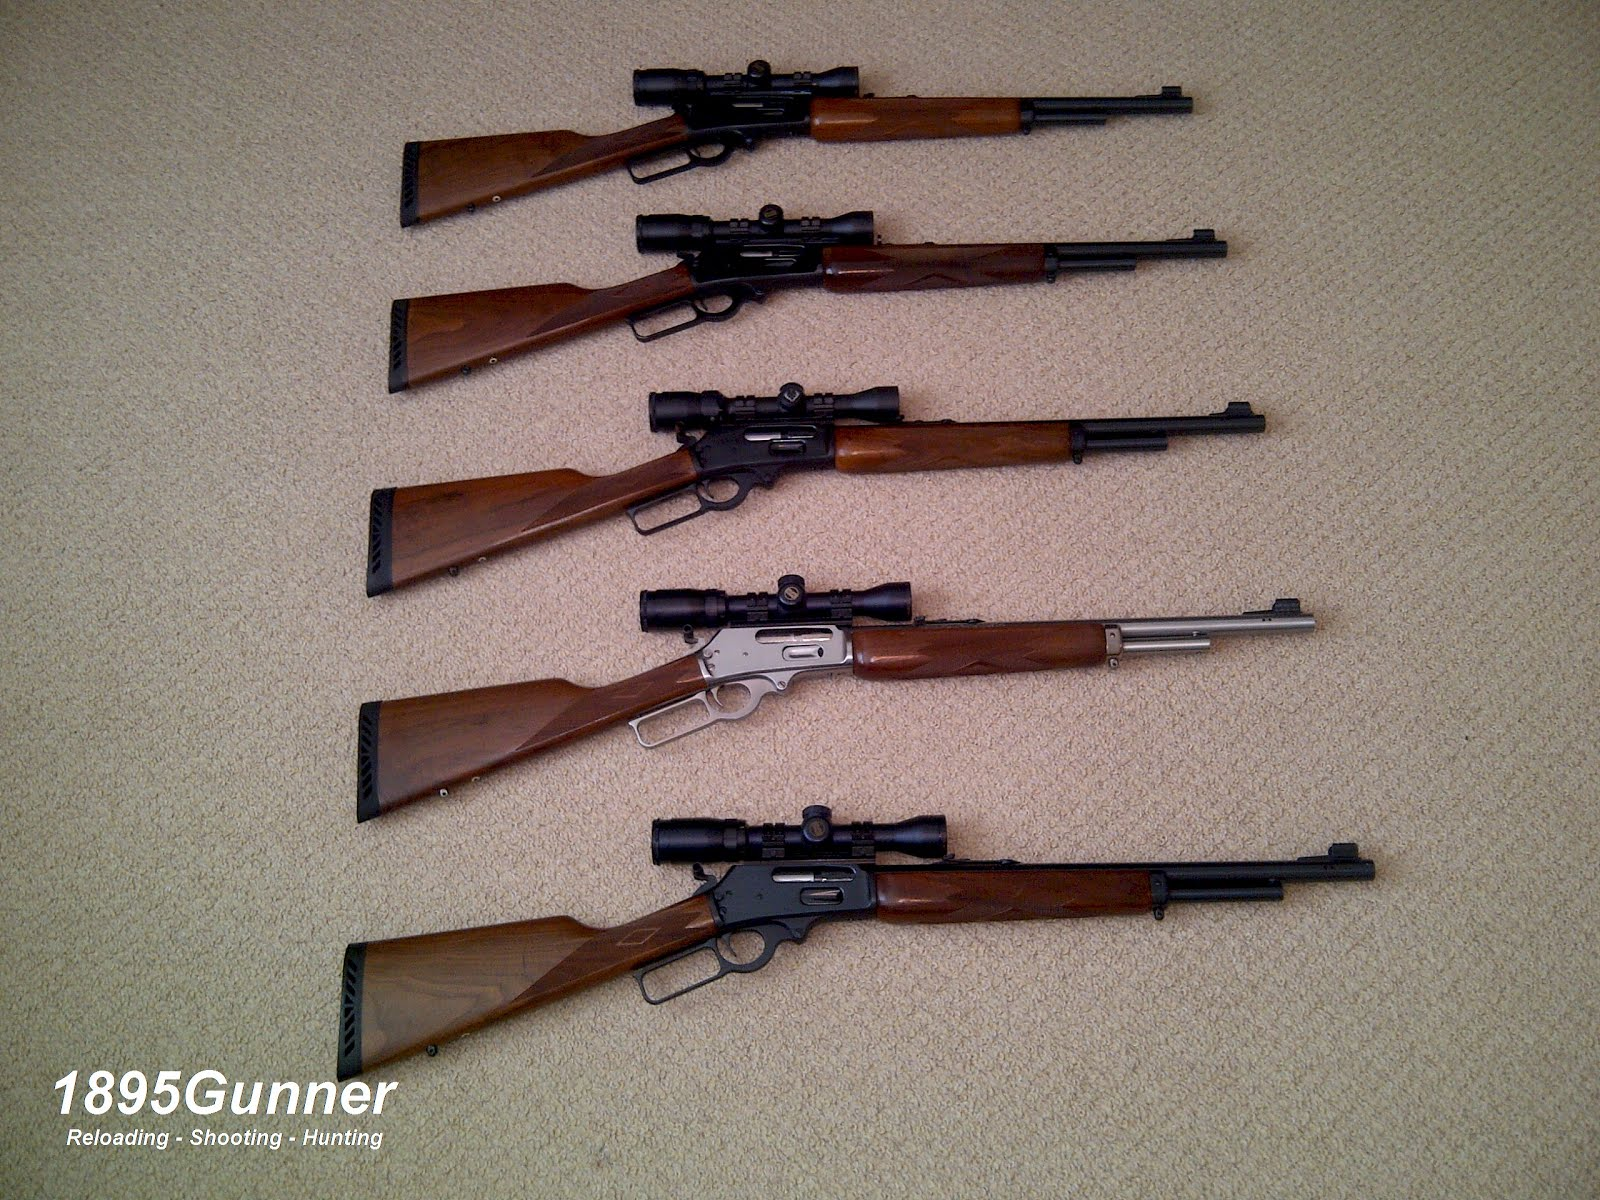 My Guide Gun Family